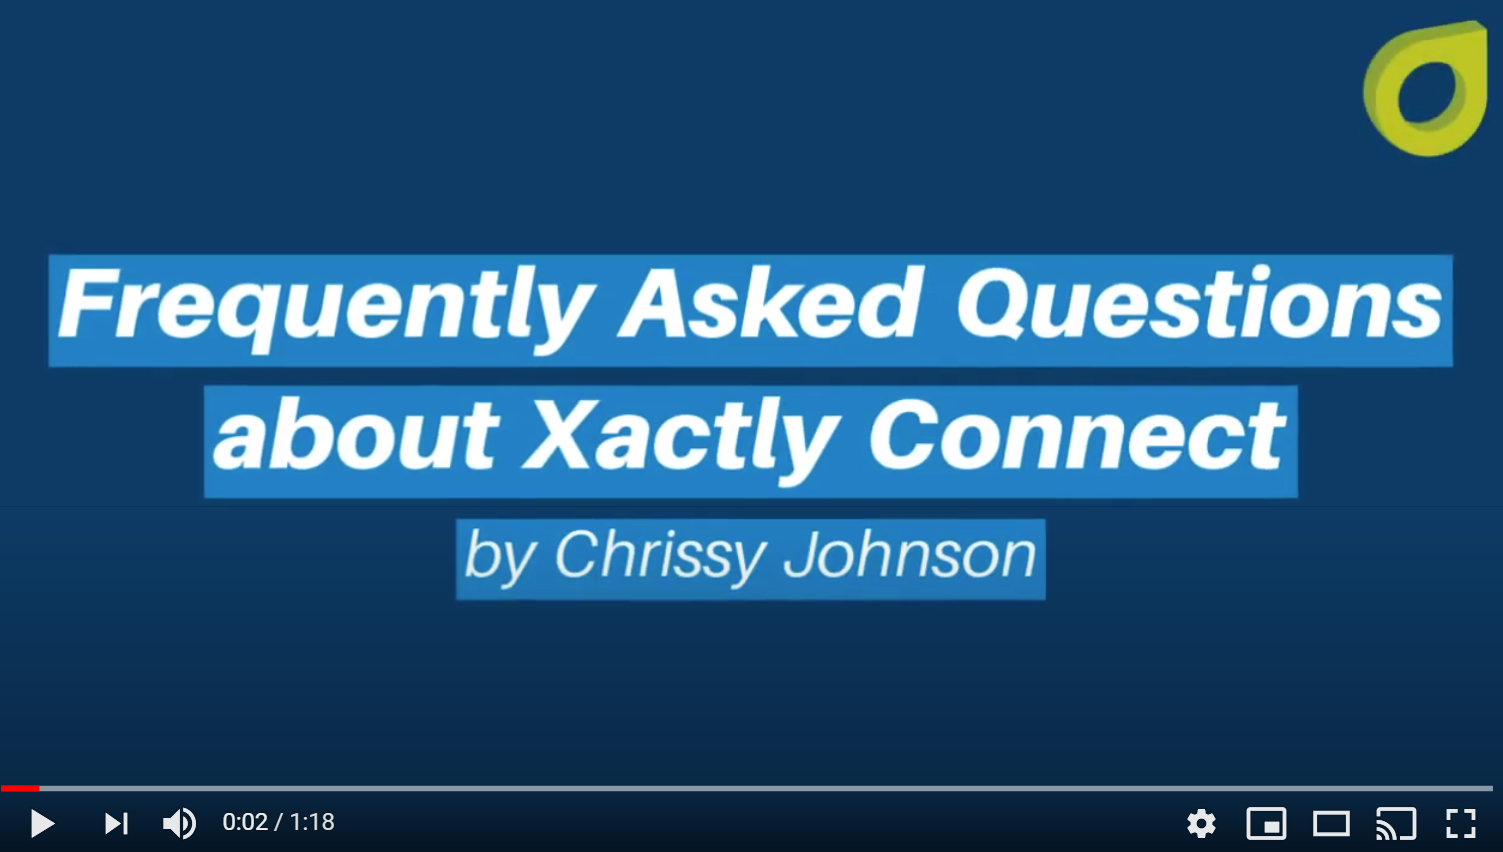 Frequently Asked Questions About Xactly Connect